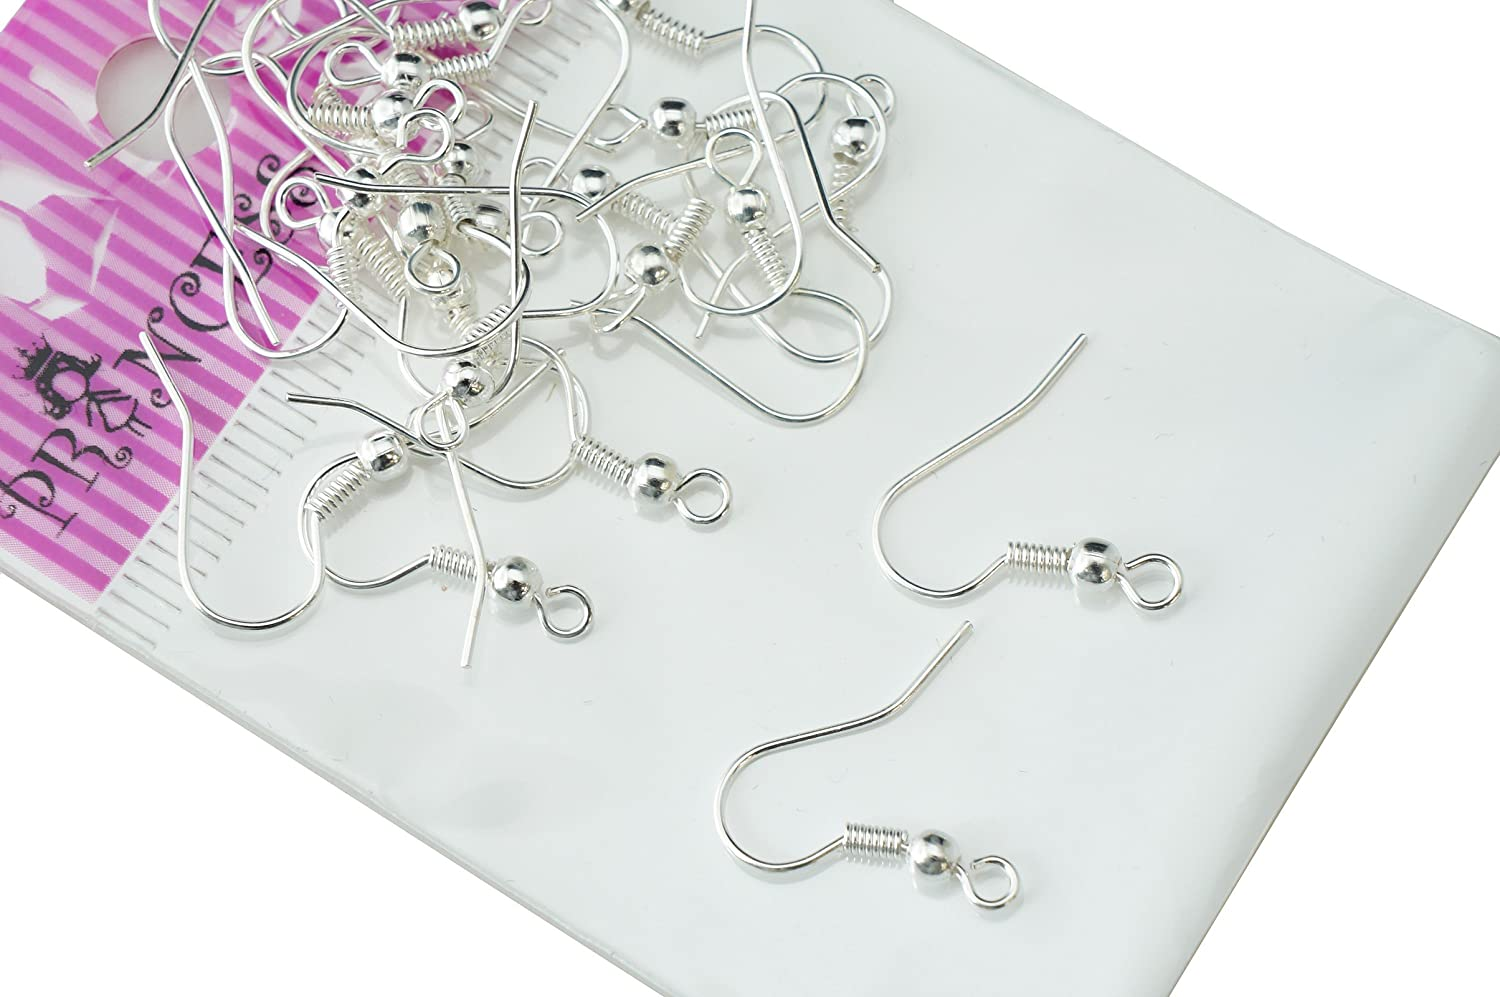 Silver Plated Fishhook Earwires and Jump Rings Jewelry Findings for DIY Earrings